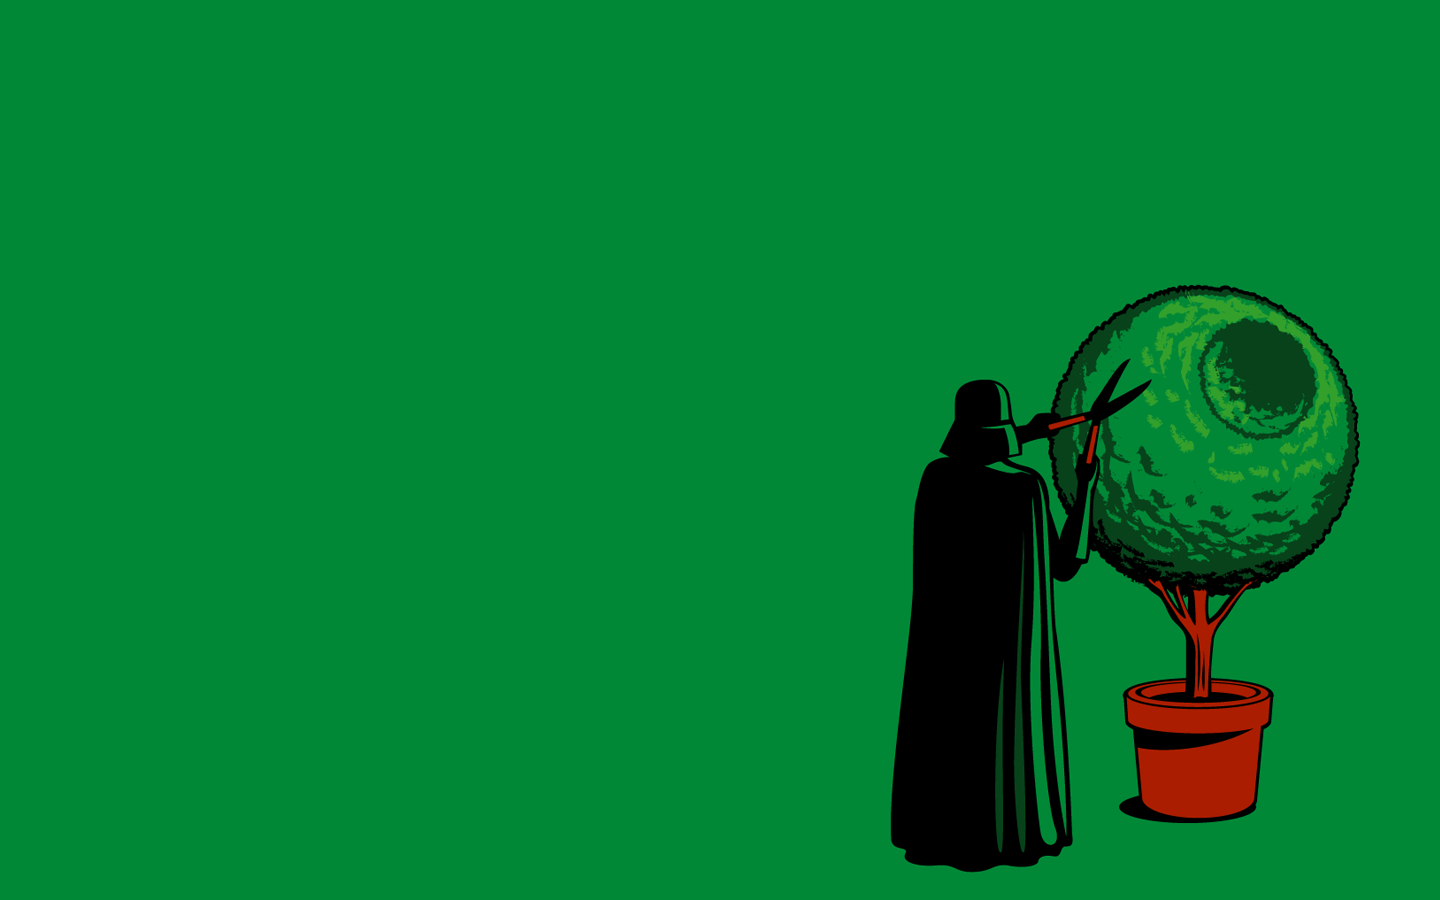 Free Download Pin Funny Star Wars Wallpapers Best Hd